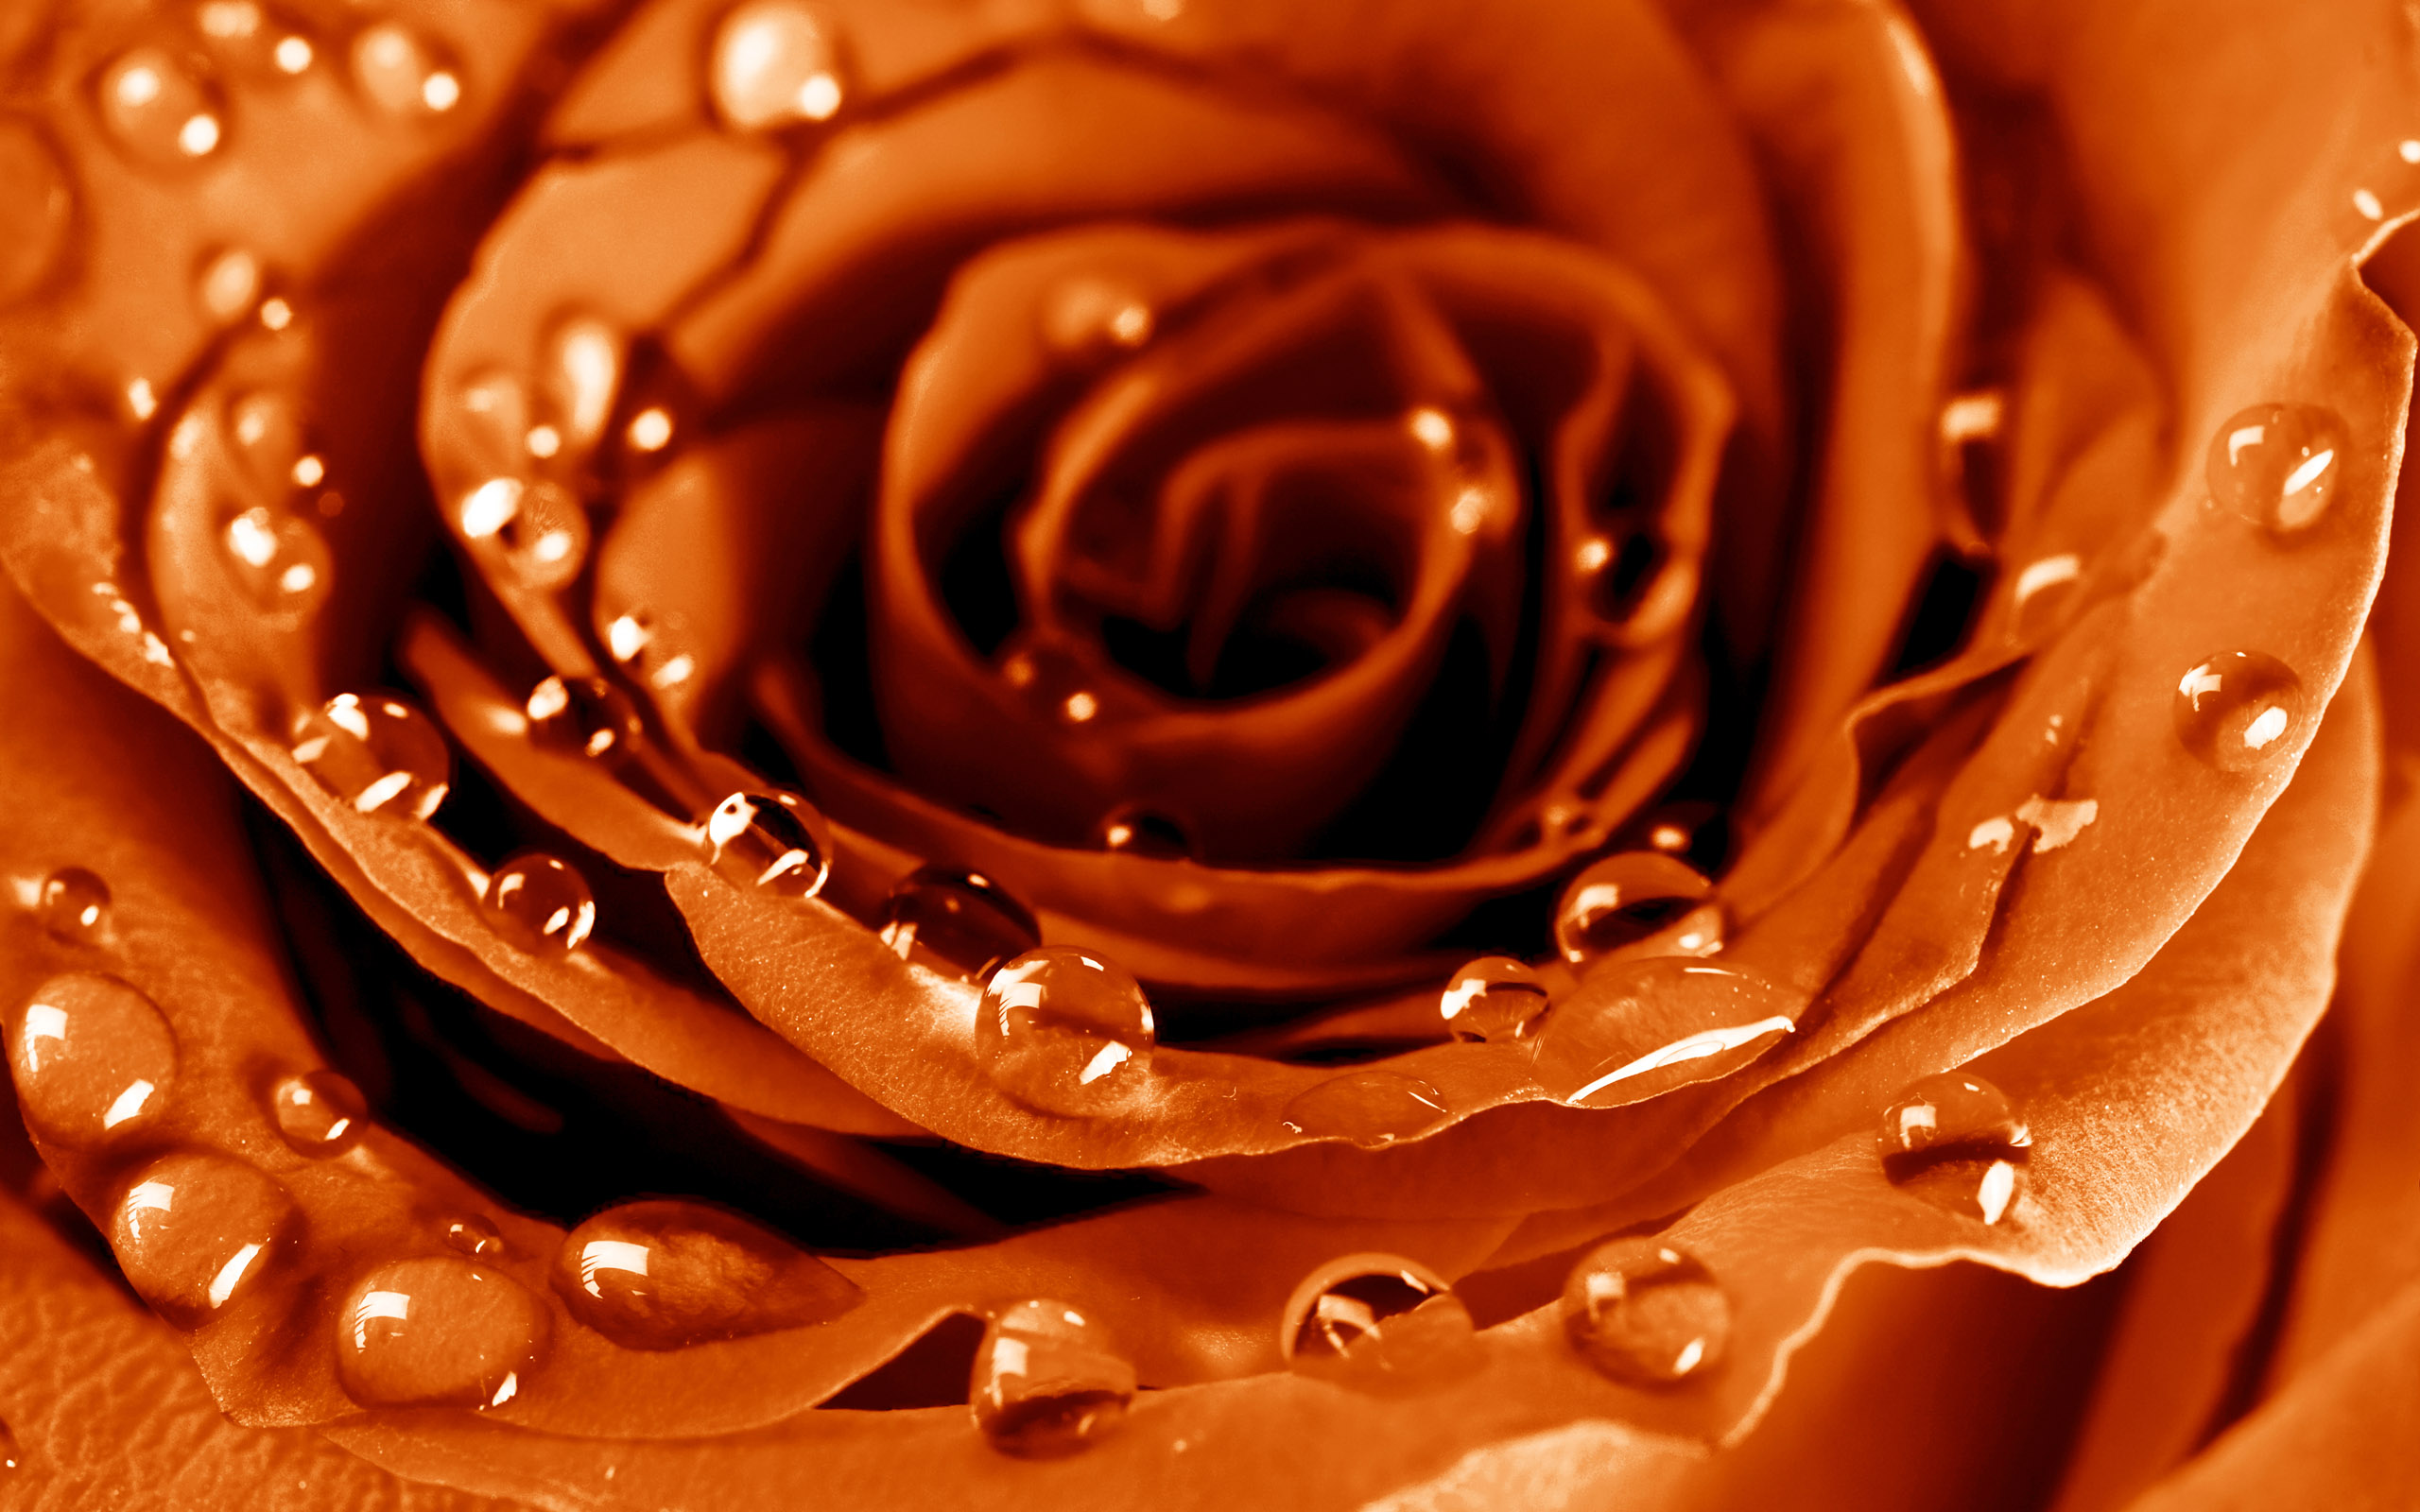 Flowers Orange RosesOrange Roses Wallpaper